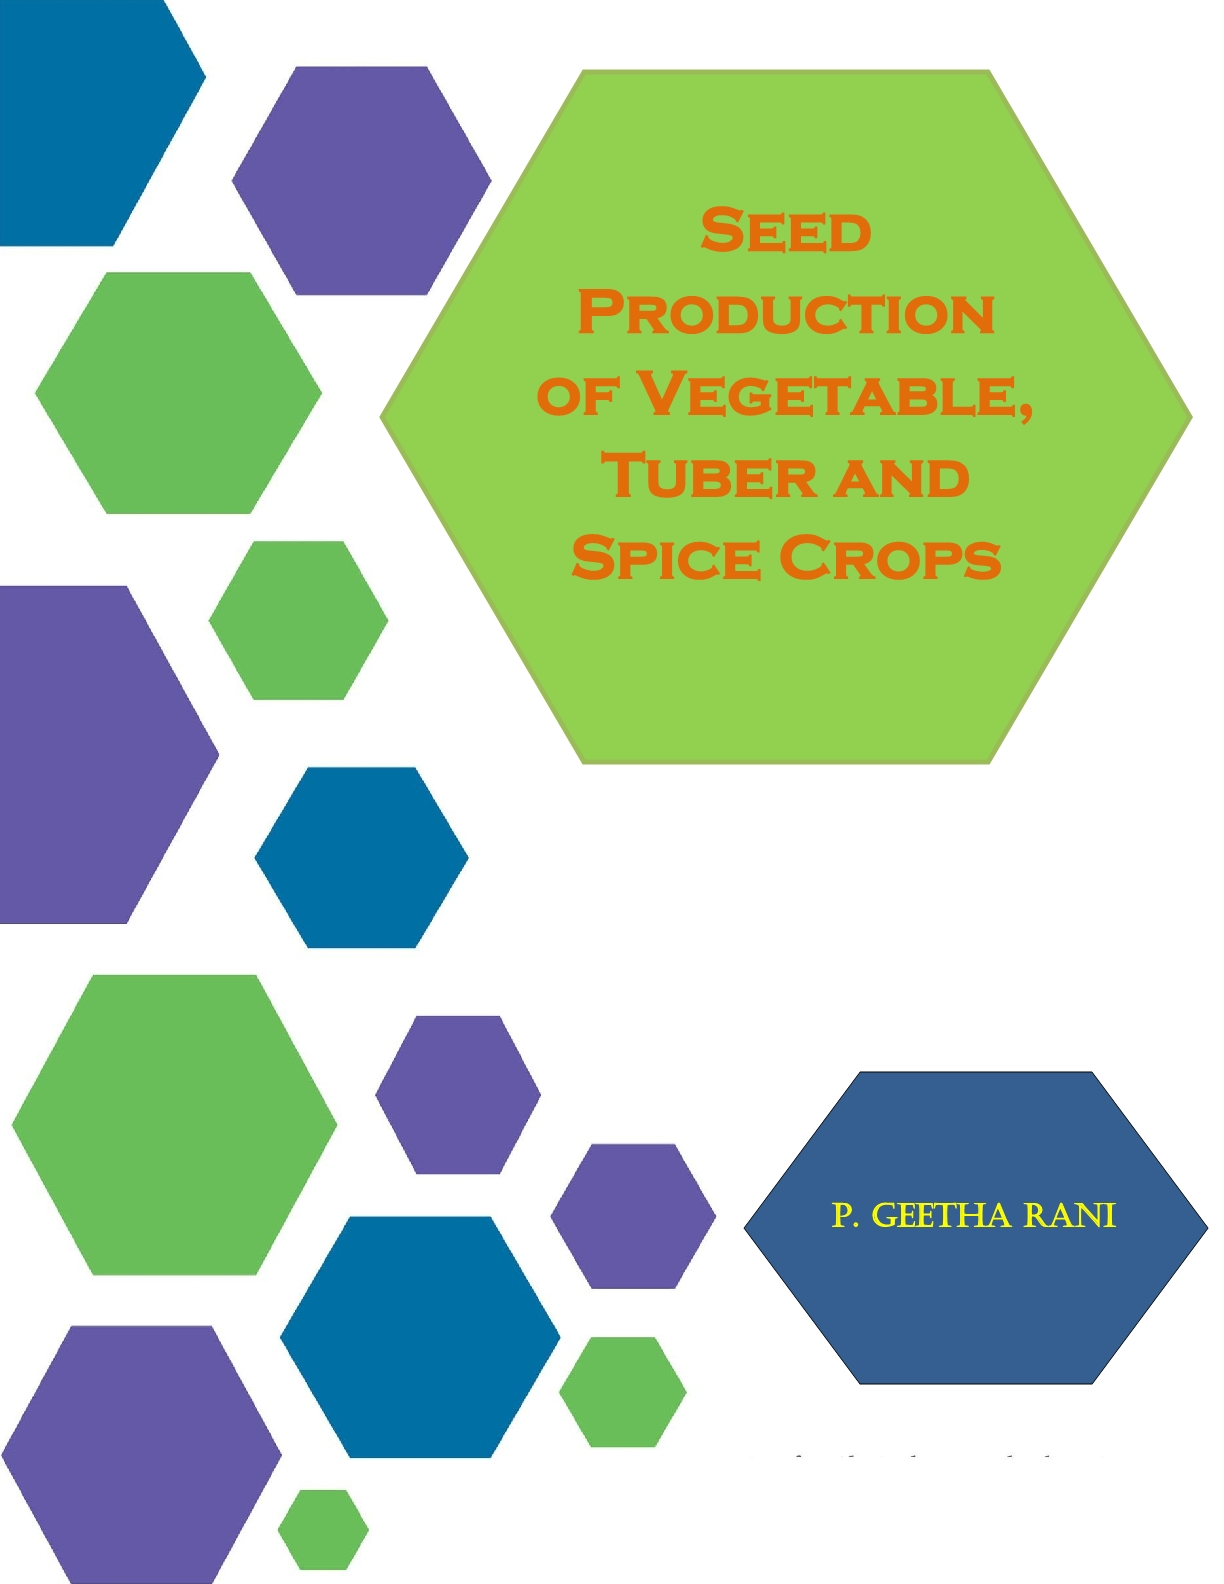 importance and scope of vegetable seed production in india